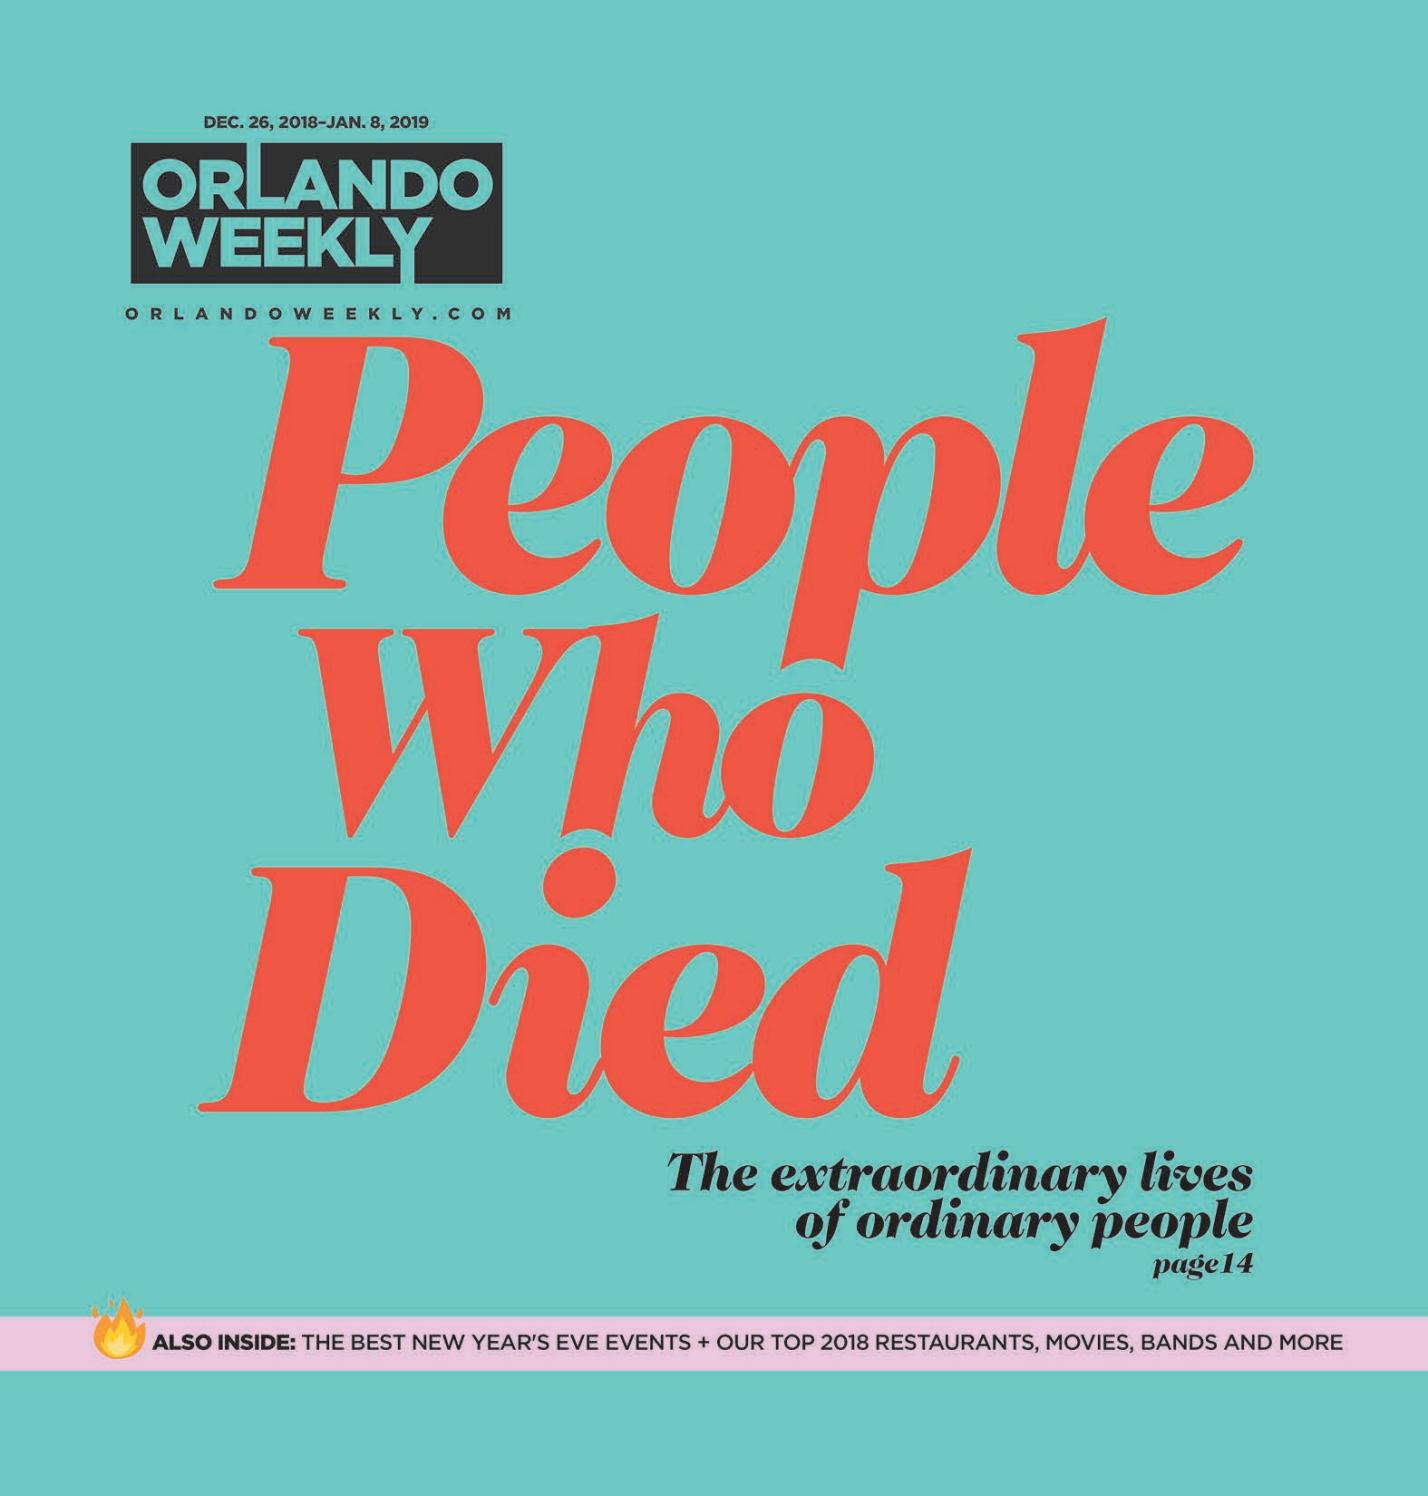 Orlando Weekly December 26 - January 8, 2018 by Euclid Media Group